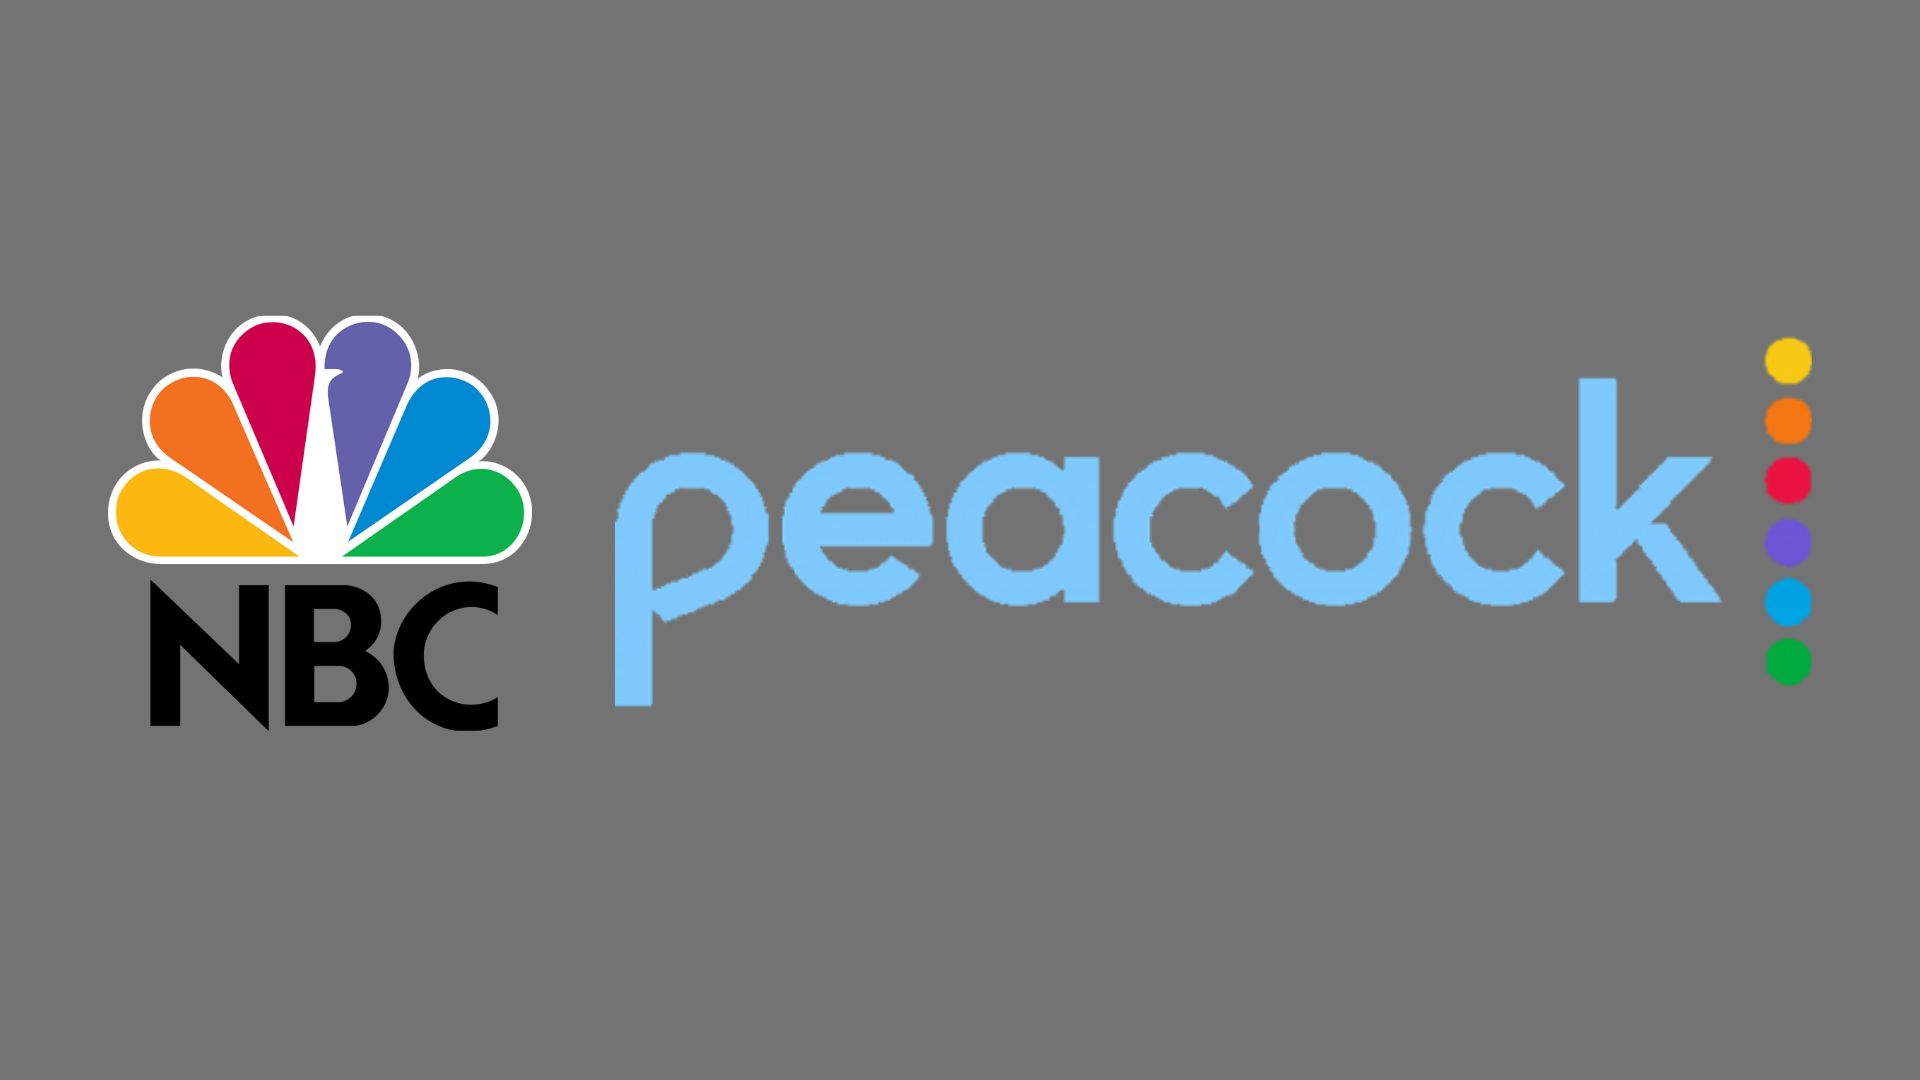 NBC-Peacock-GIZMOTT-News